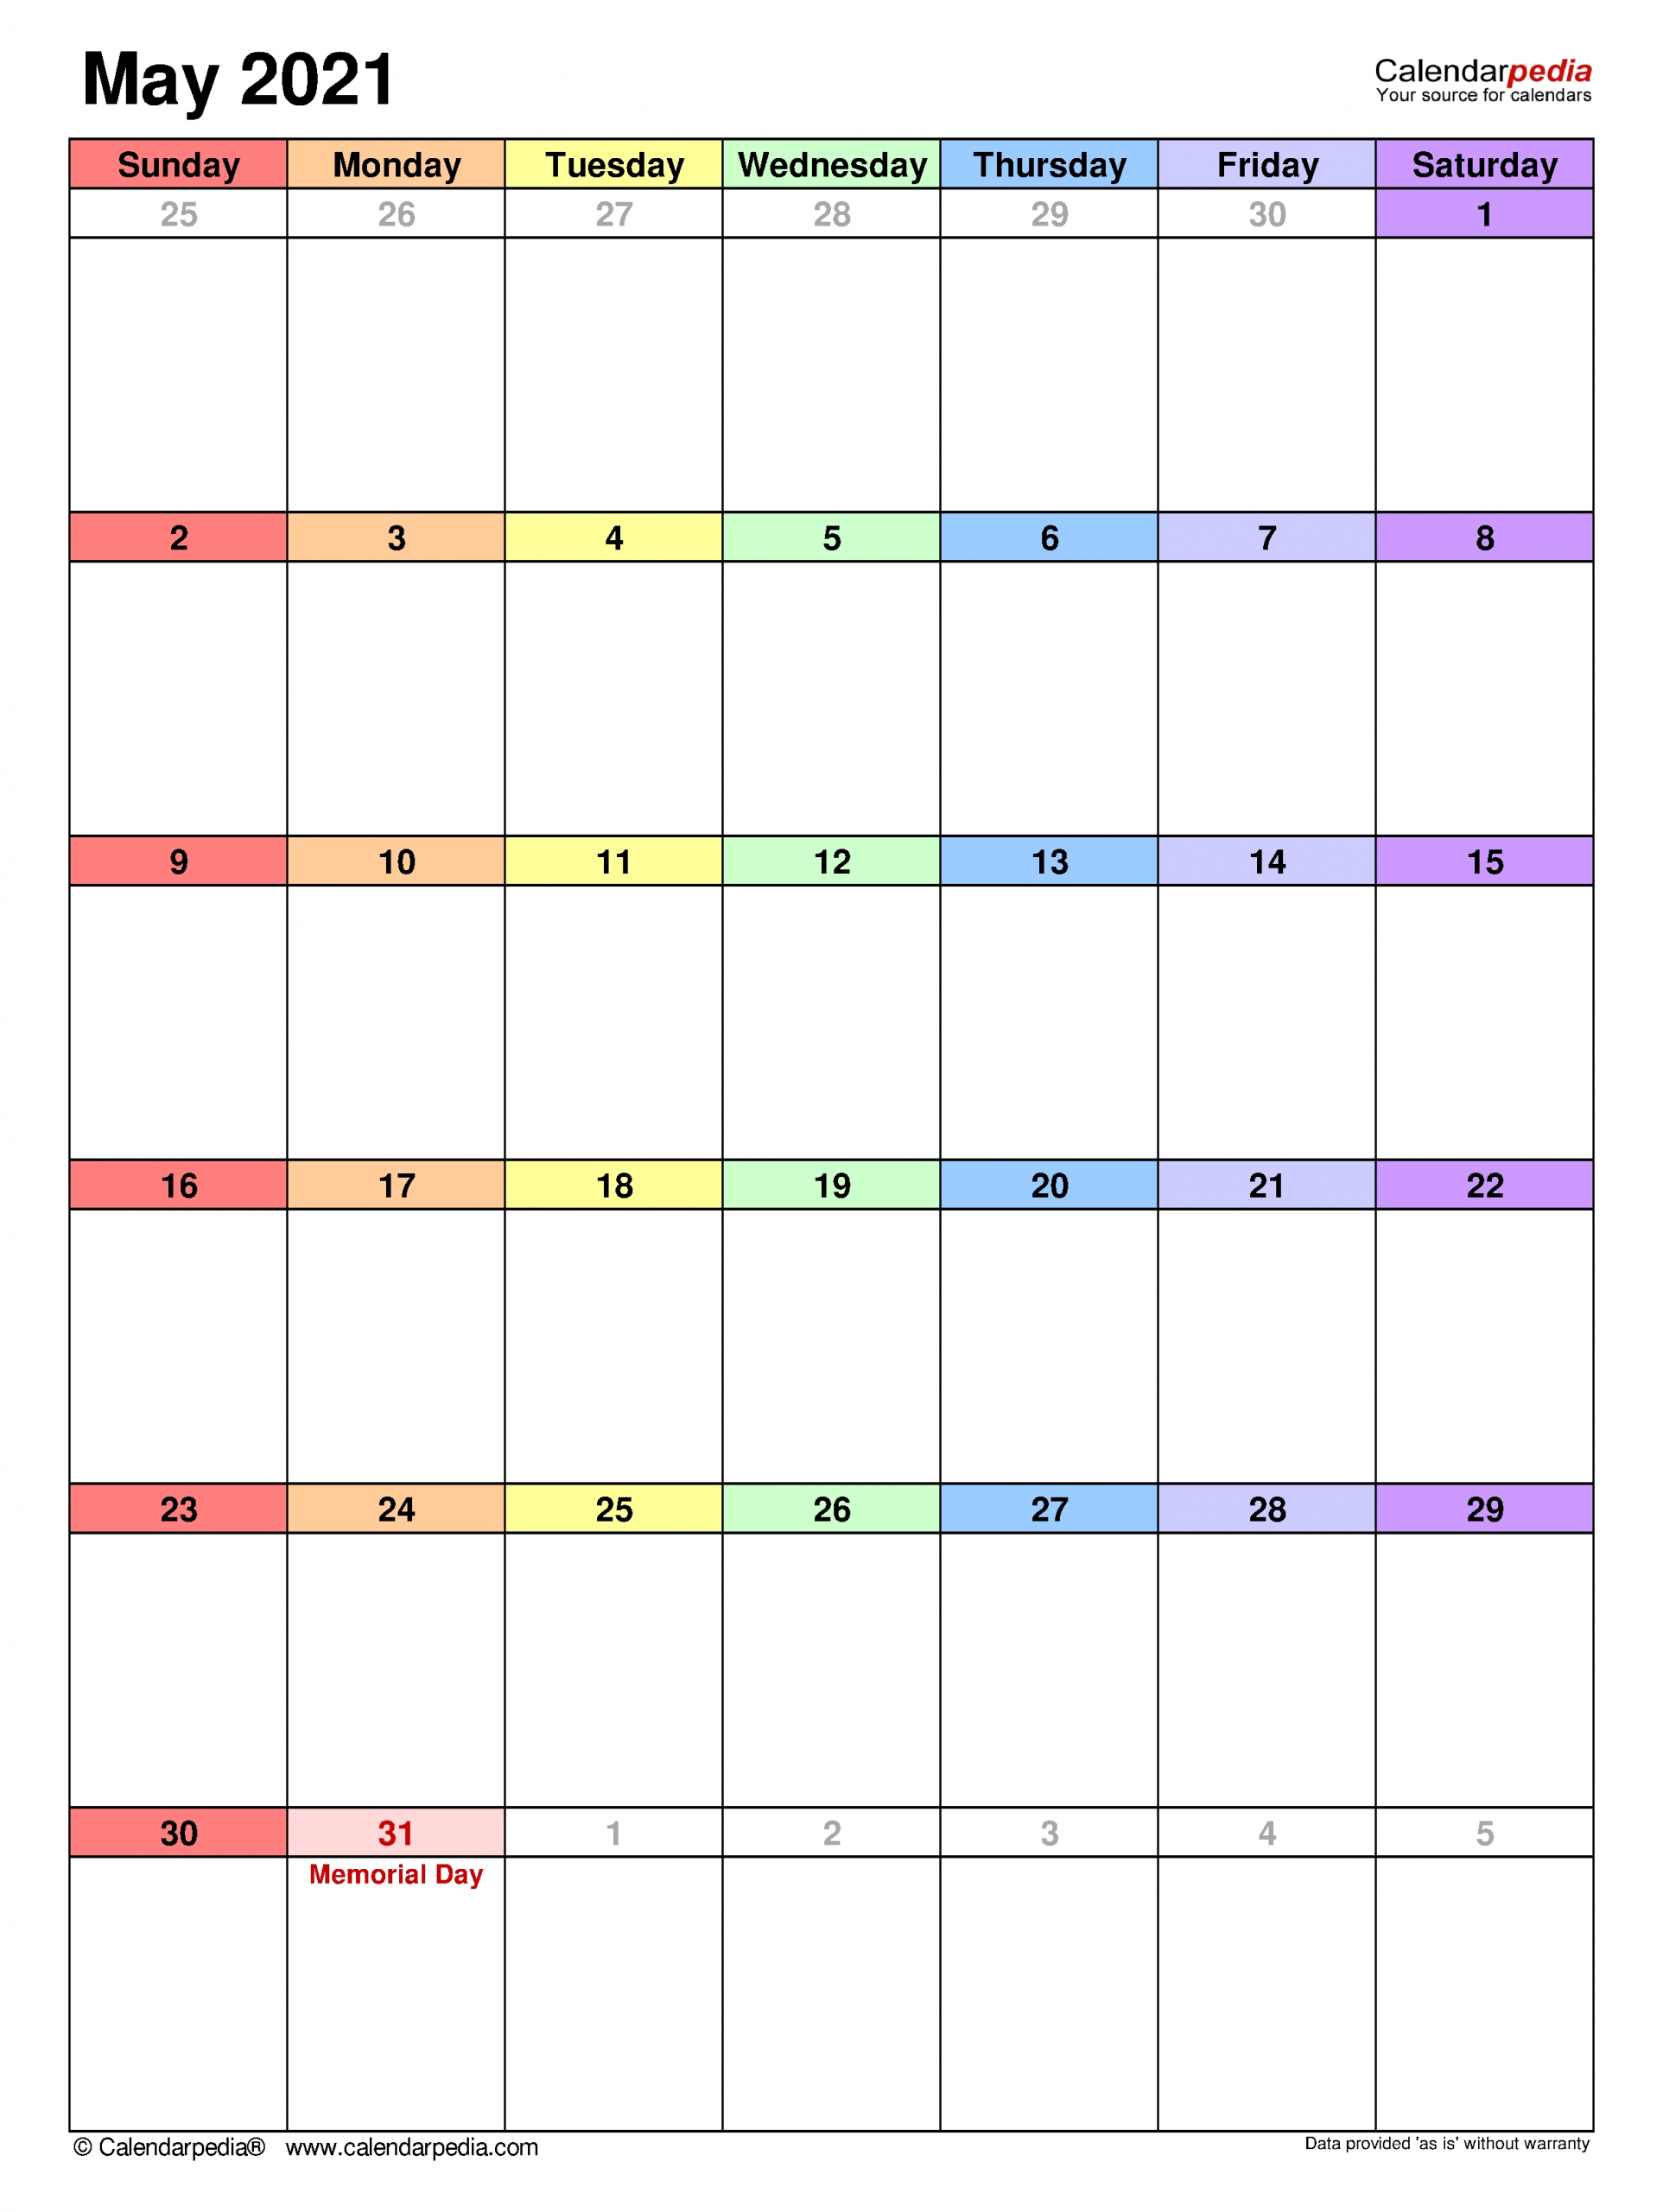 May 2021 Calendar   Templates For Word, Excel And Pdf